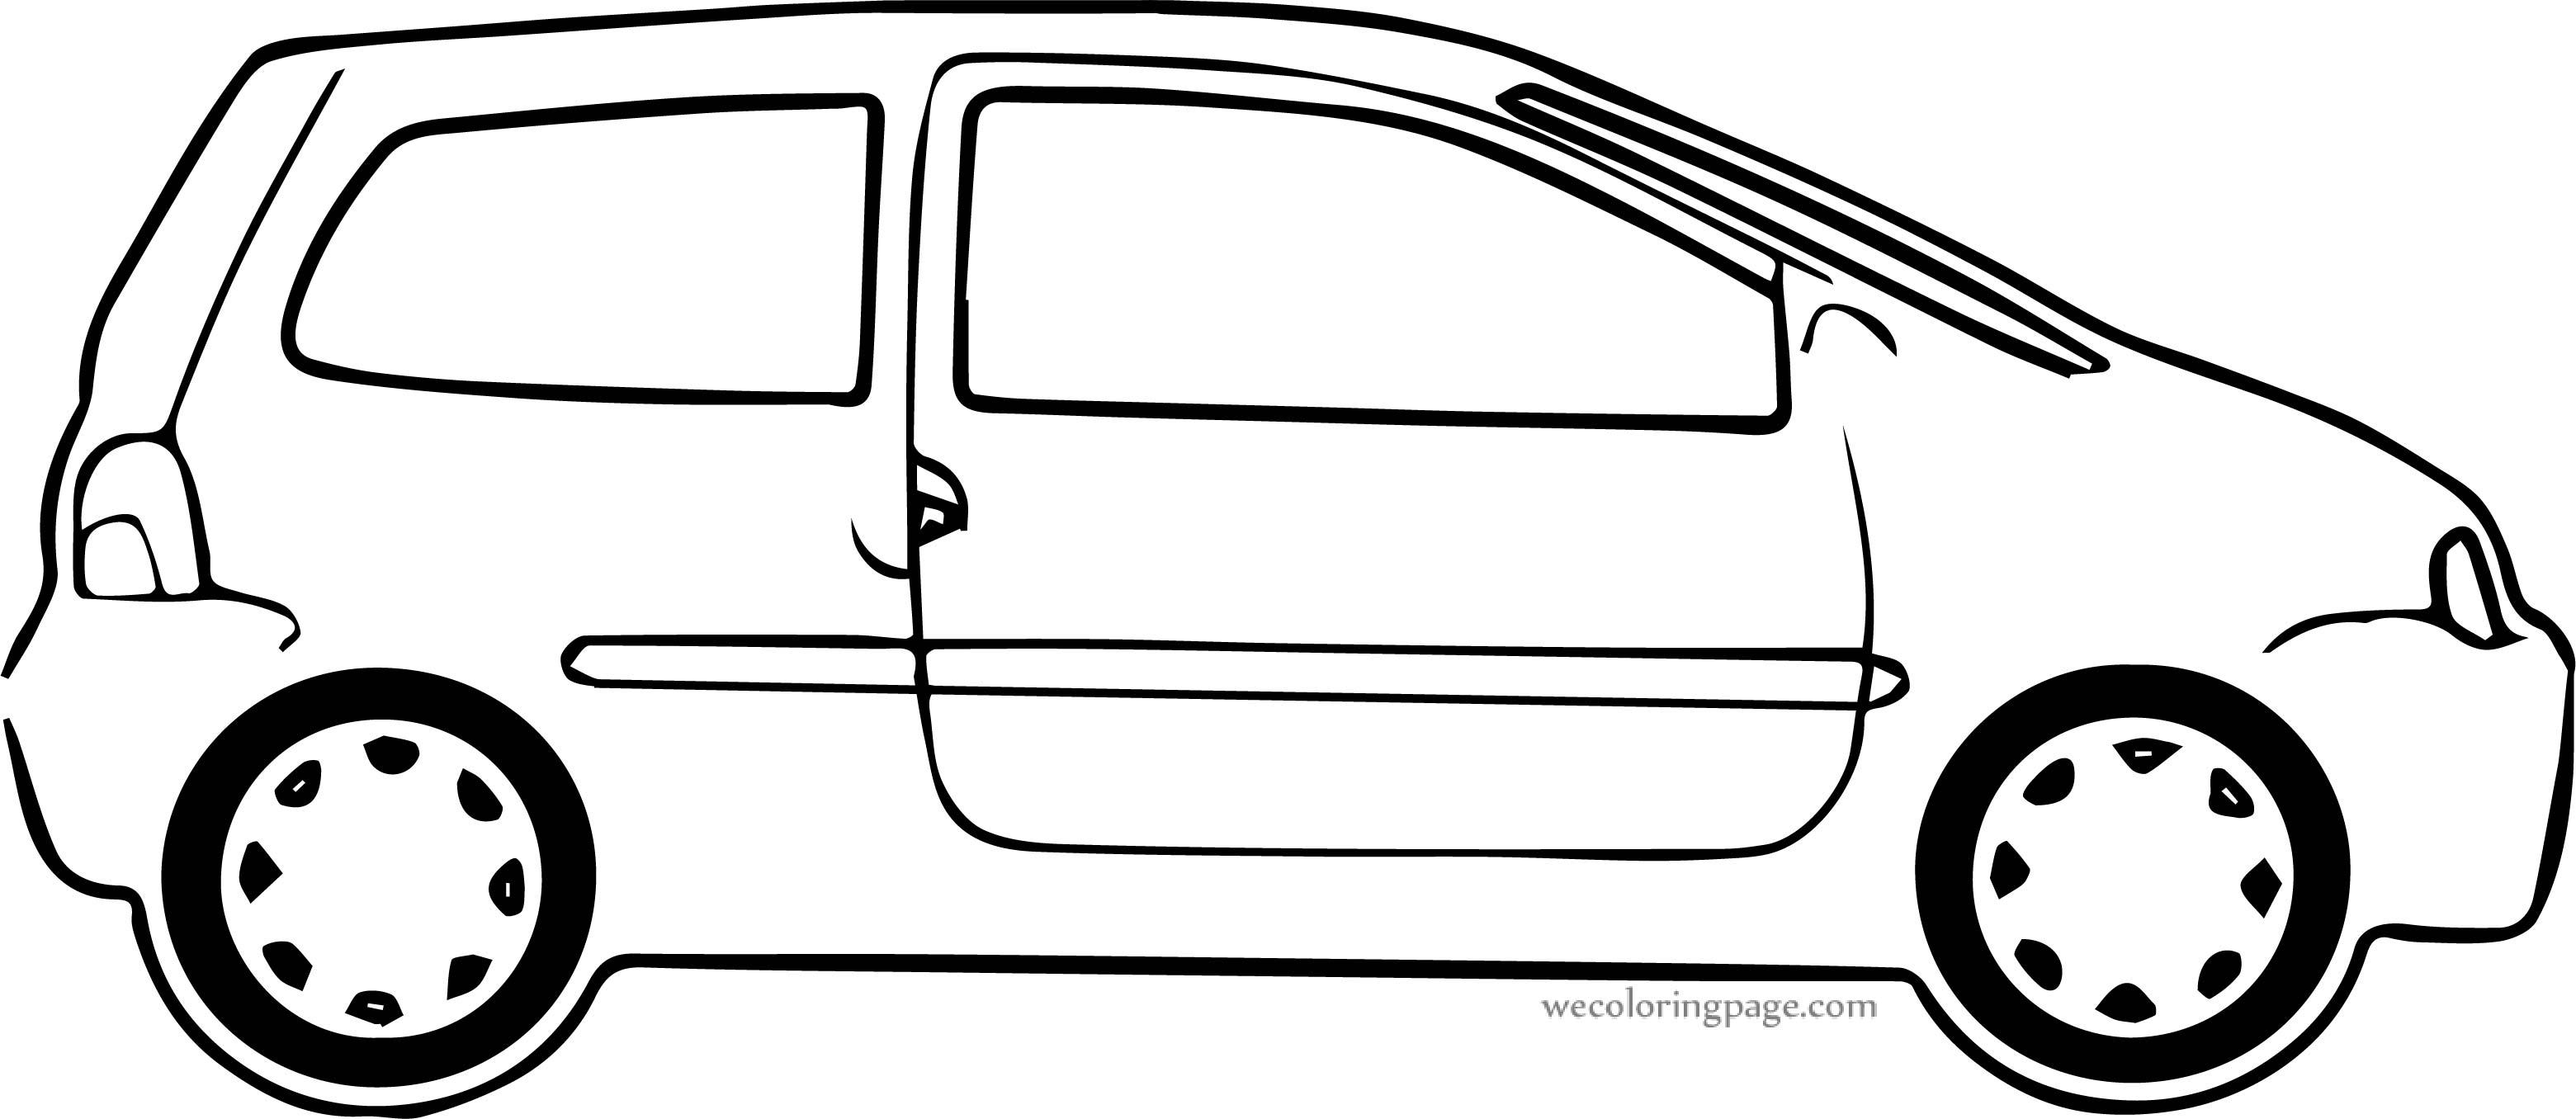 Car Wecoloringpage Coloring Page 185